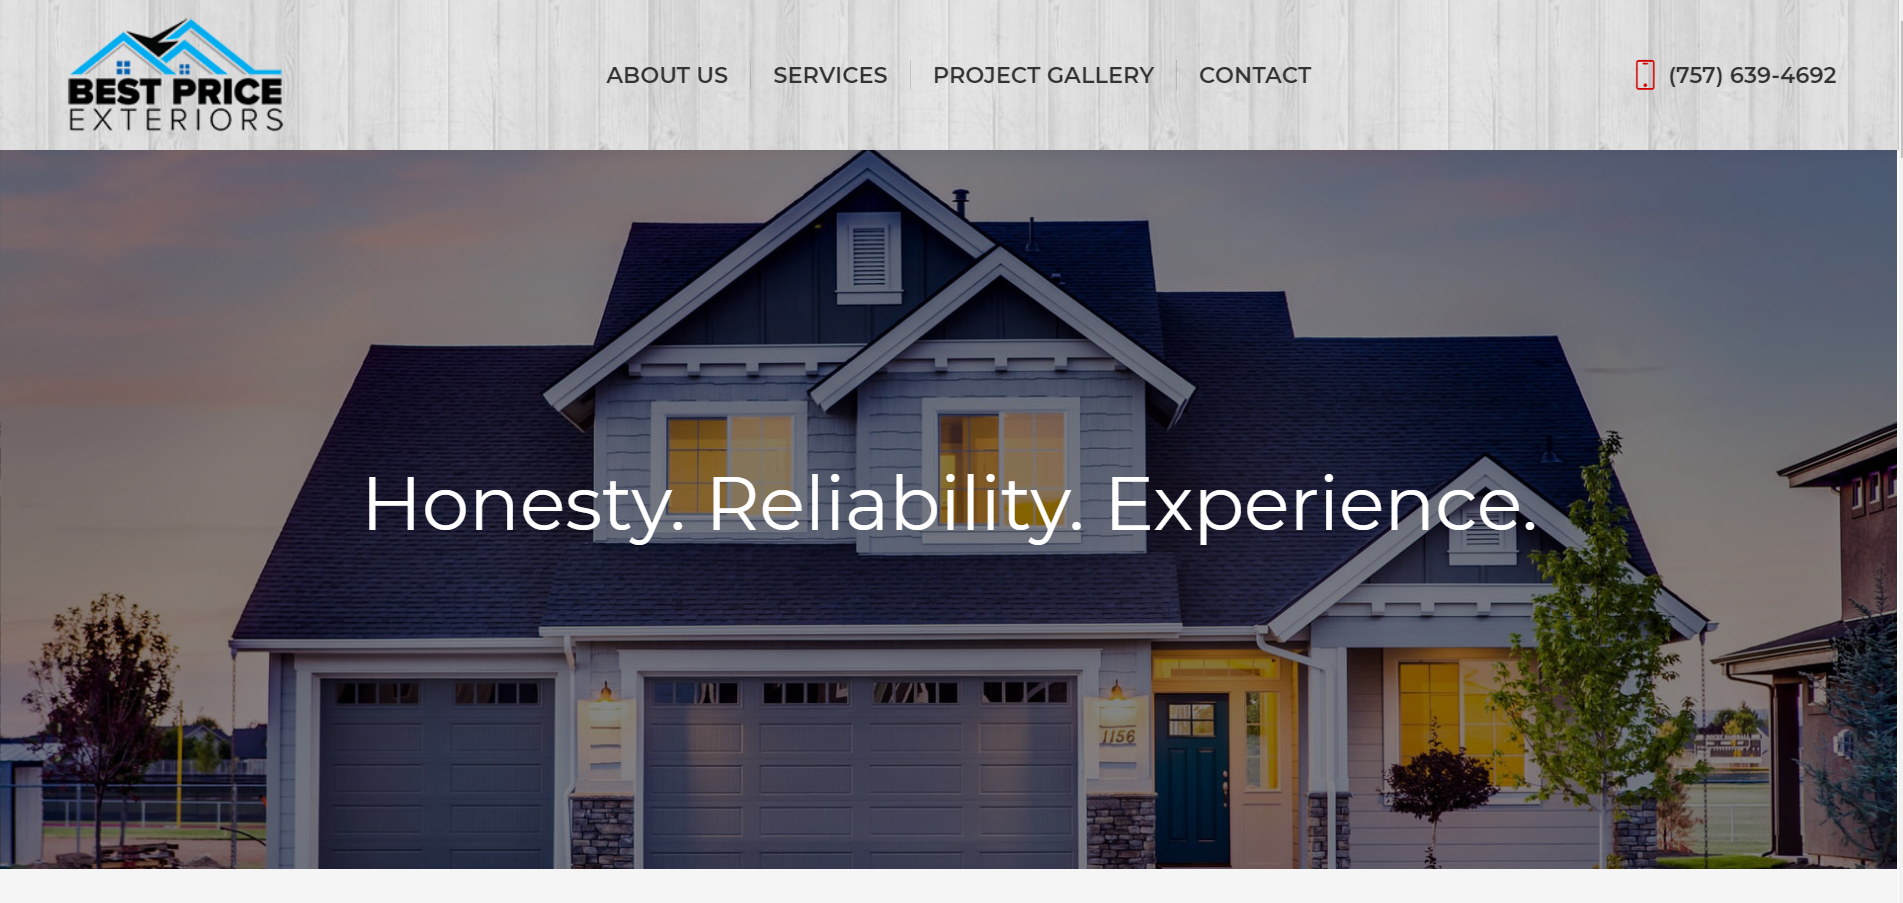 Best Price Exteriors - Website Launch - Web Design - Web Development - Local Web Designer